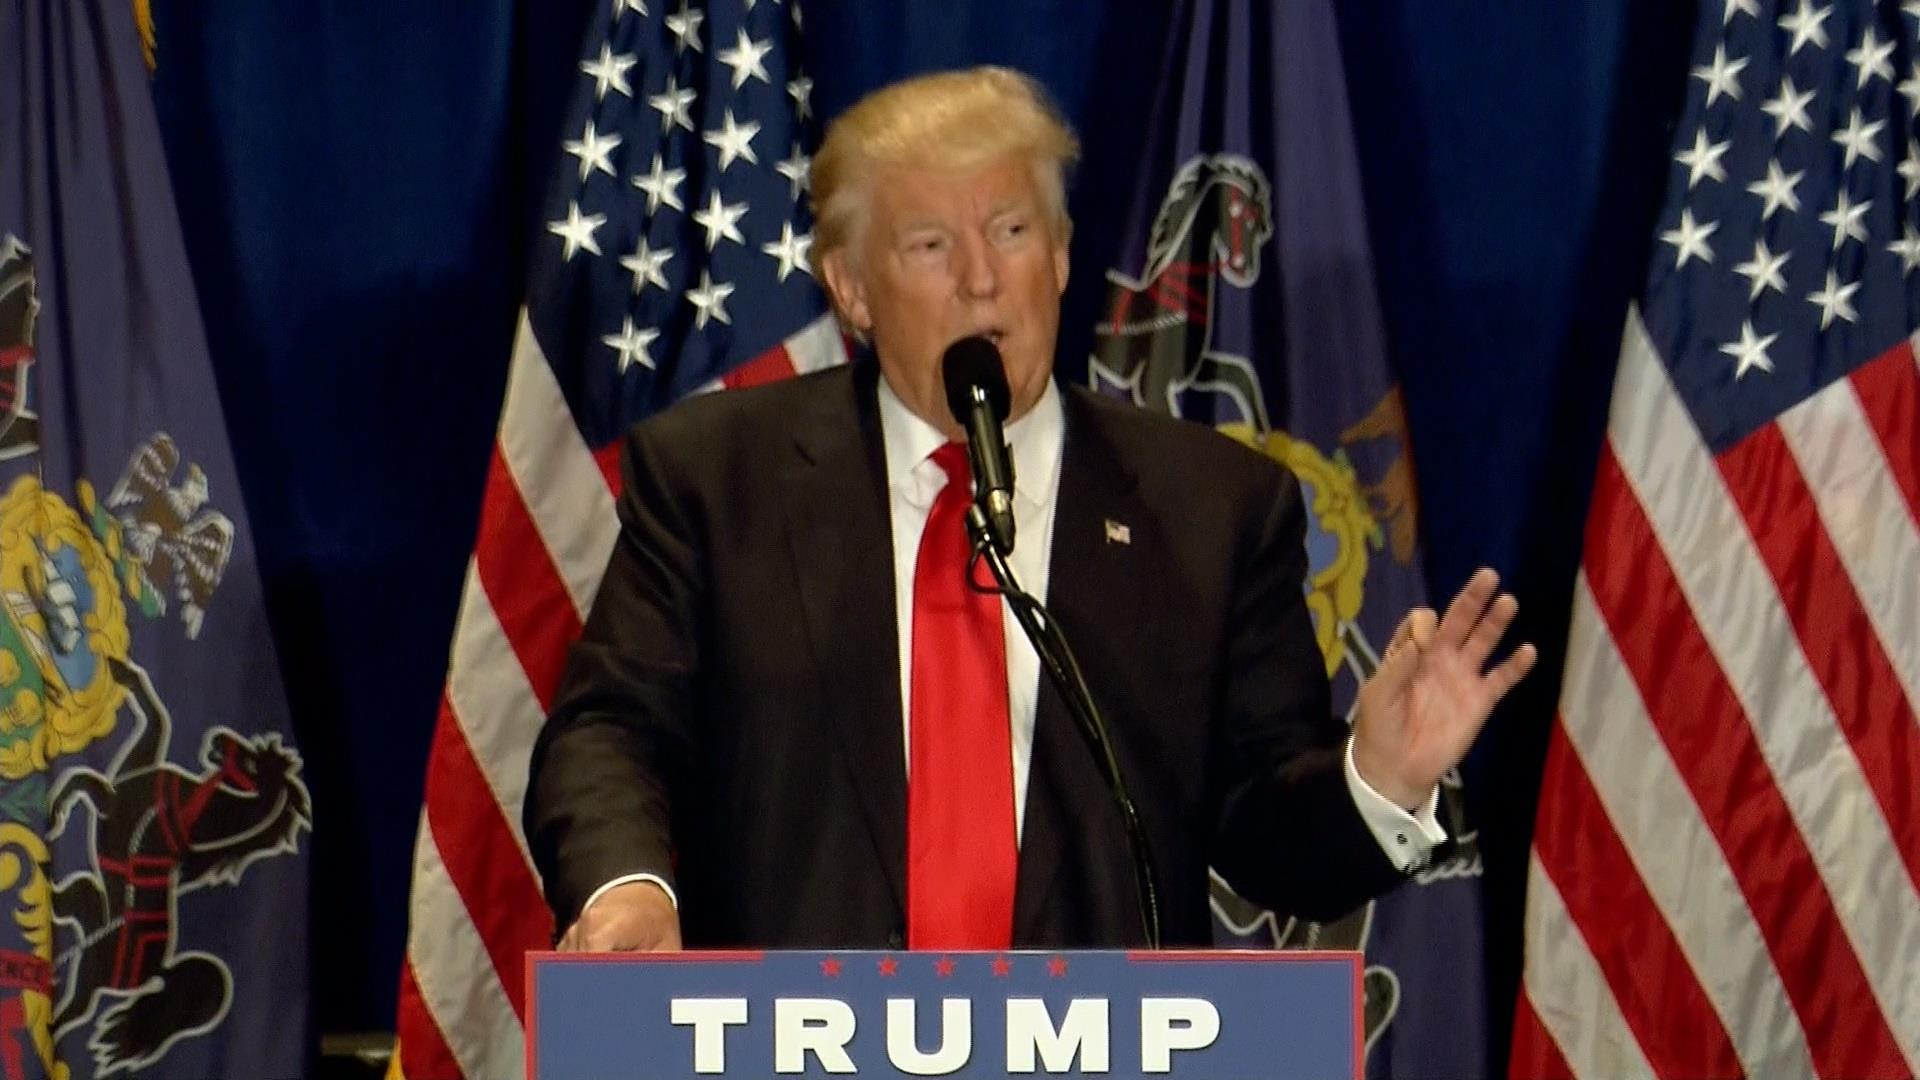 Trump: Clinton won't win PA without cheating